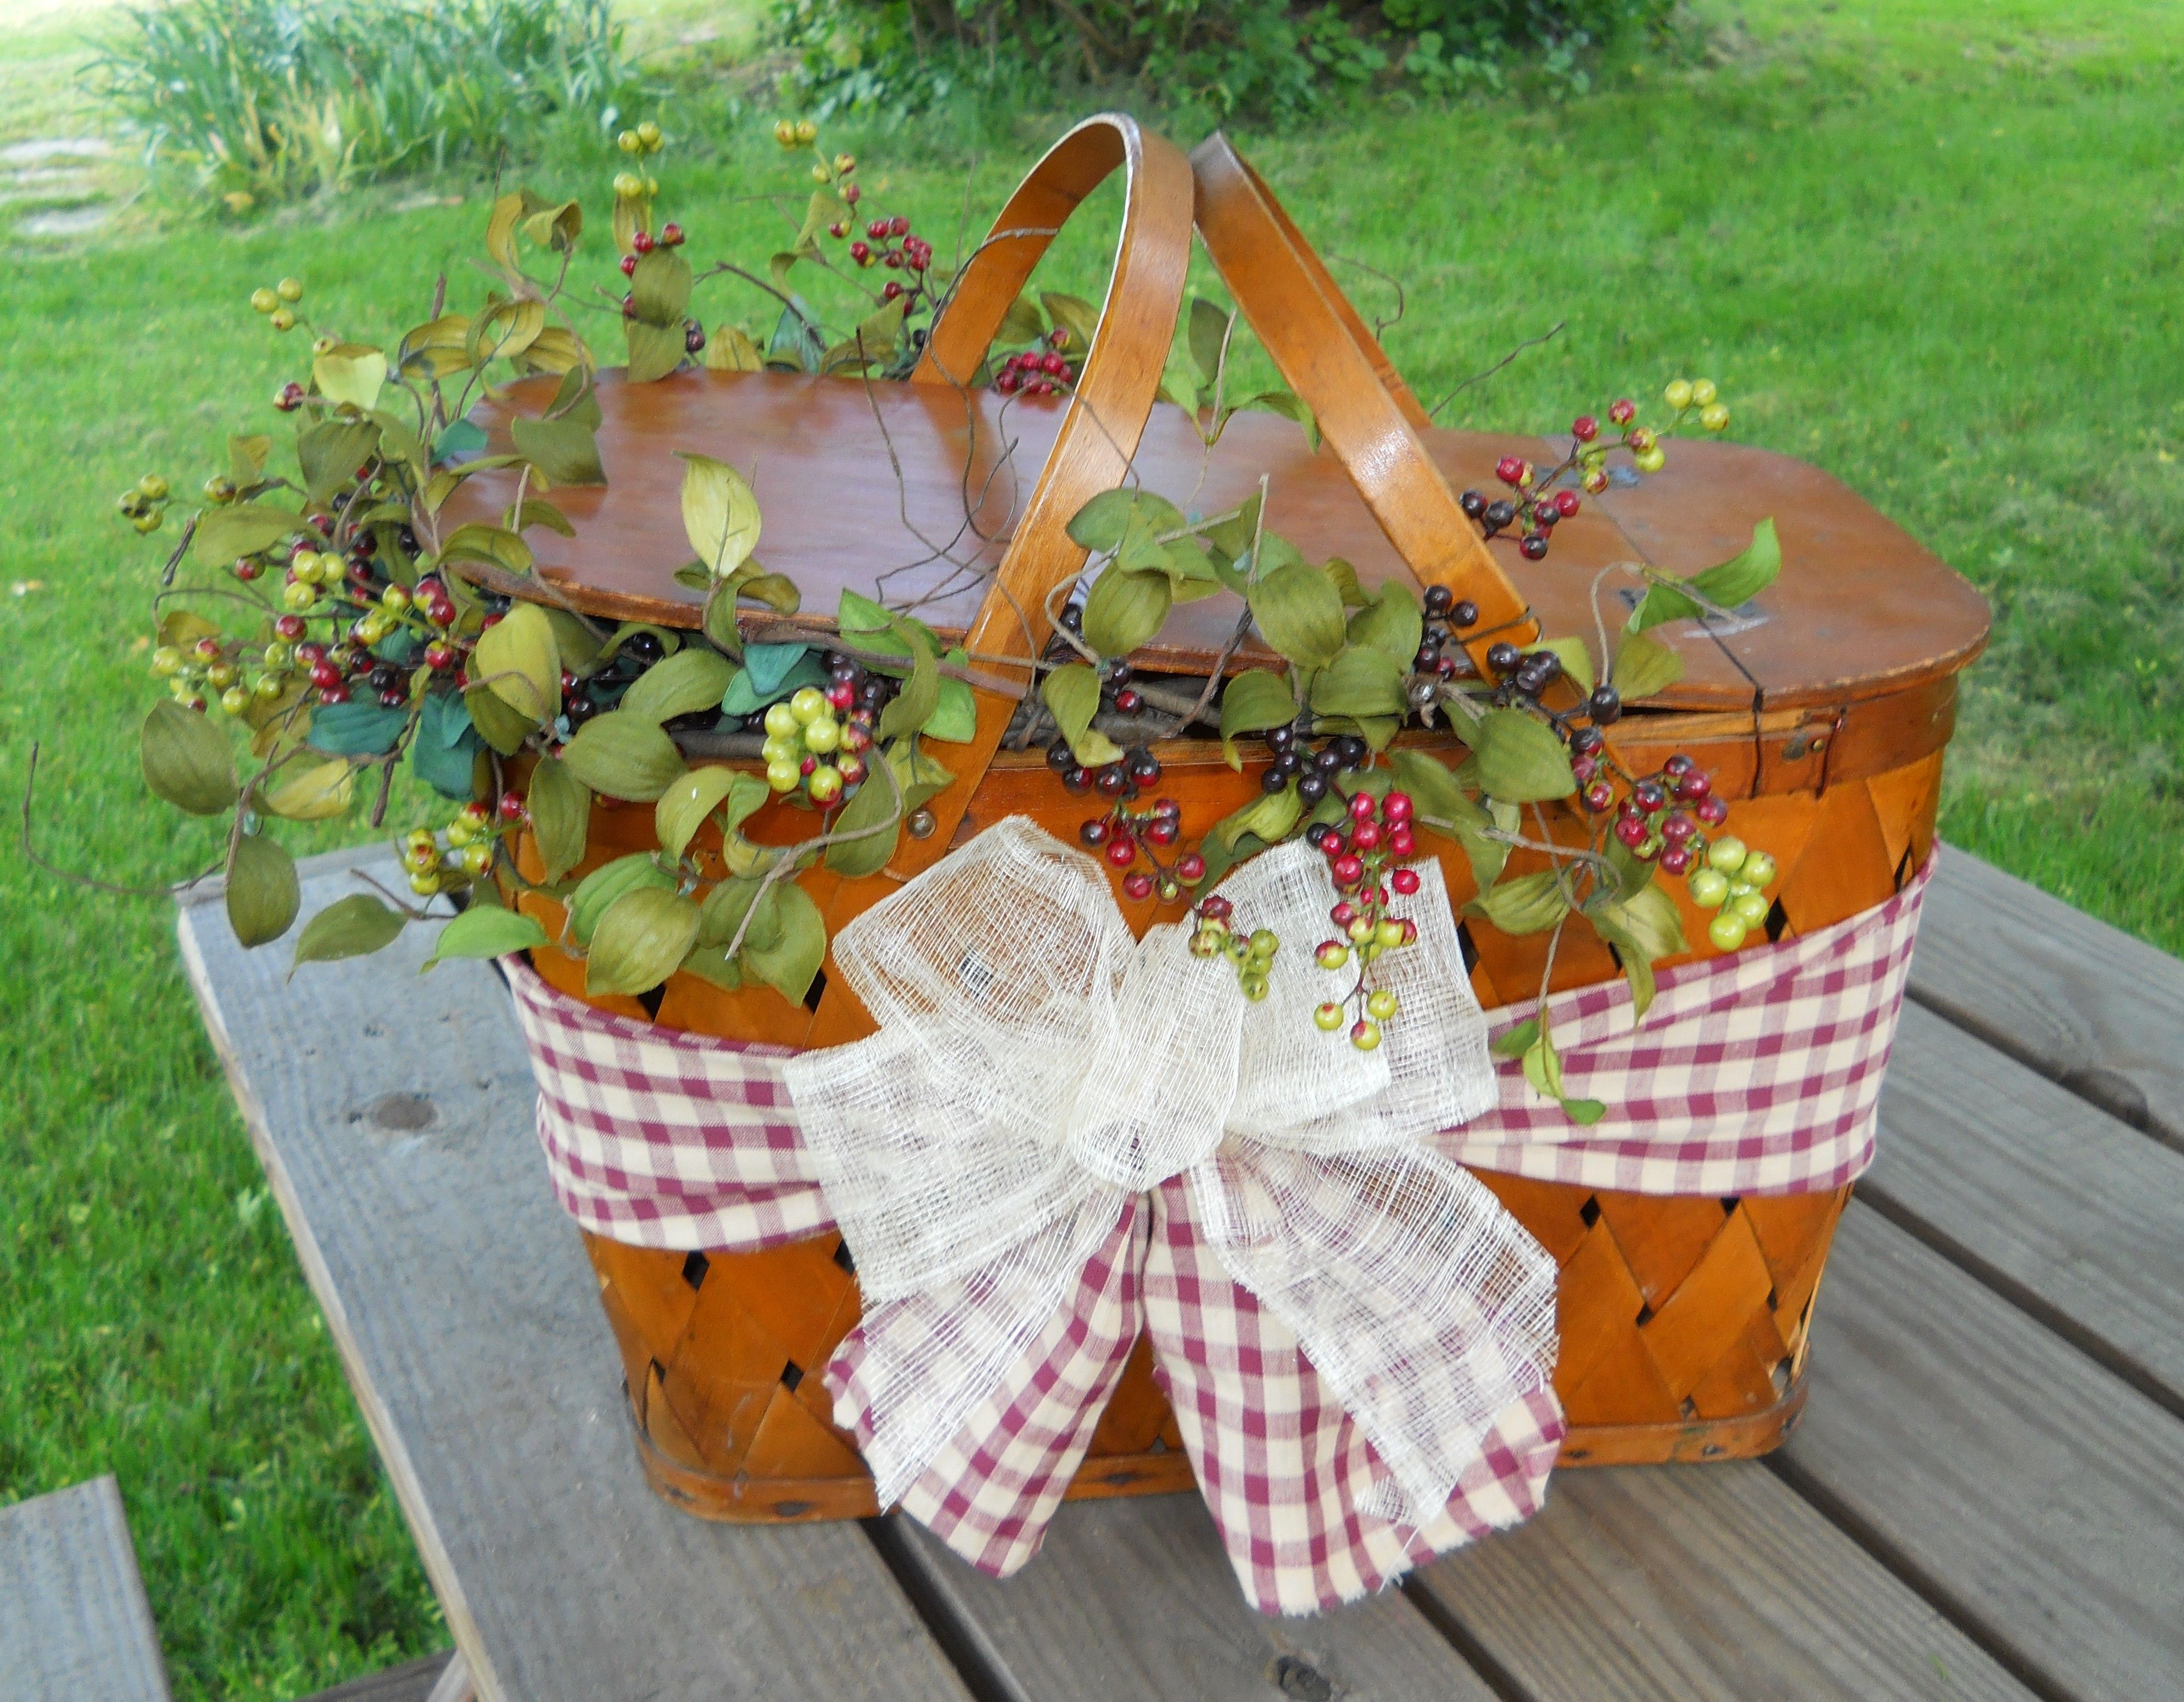 Picnic Decor Decorated Picnic Basket By Country Craft House Centerpieces